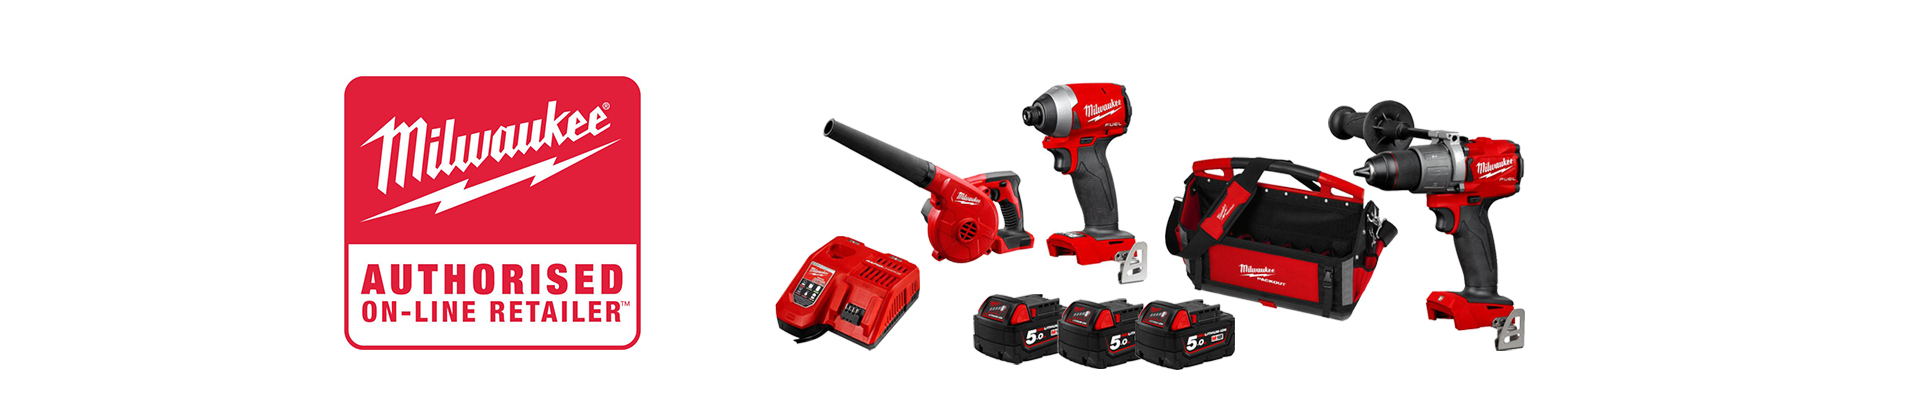 Milwaukee 3 Piece Heavy Duty Kit